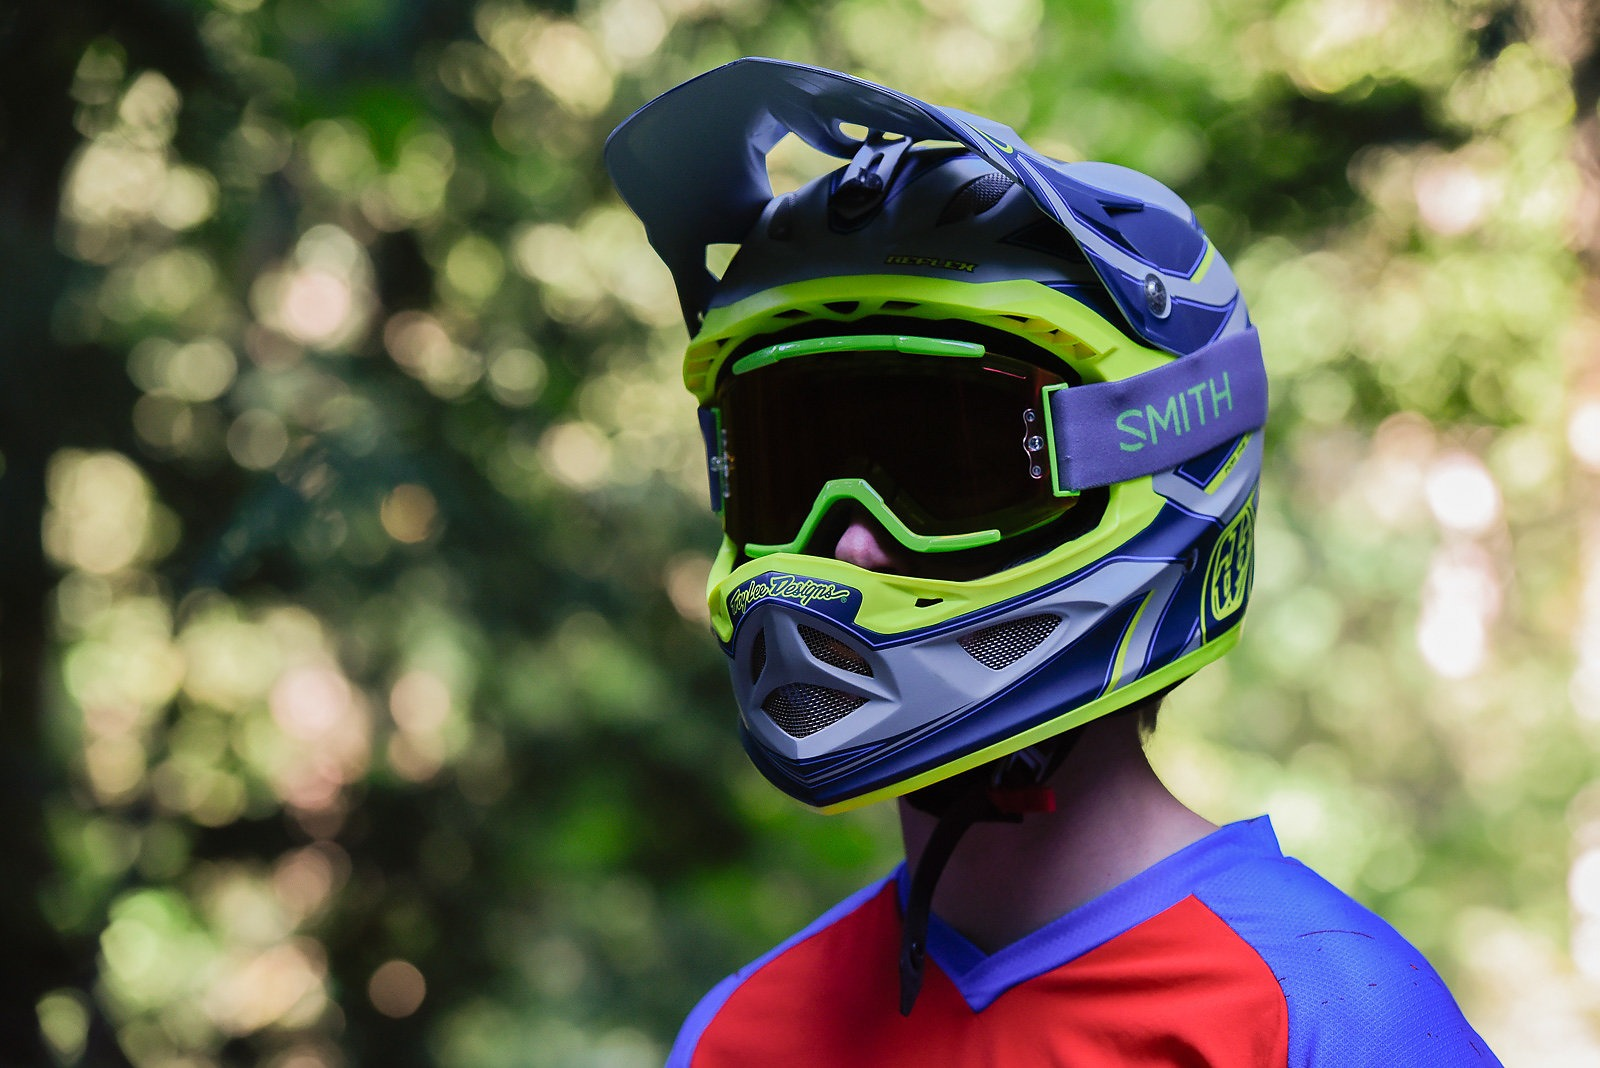 b0a3d406 Troy Lee Designs' D3 helmet is one of the most popular full-face helmets on  the market, and for a good reason.